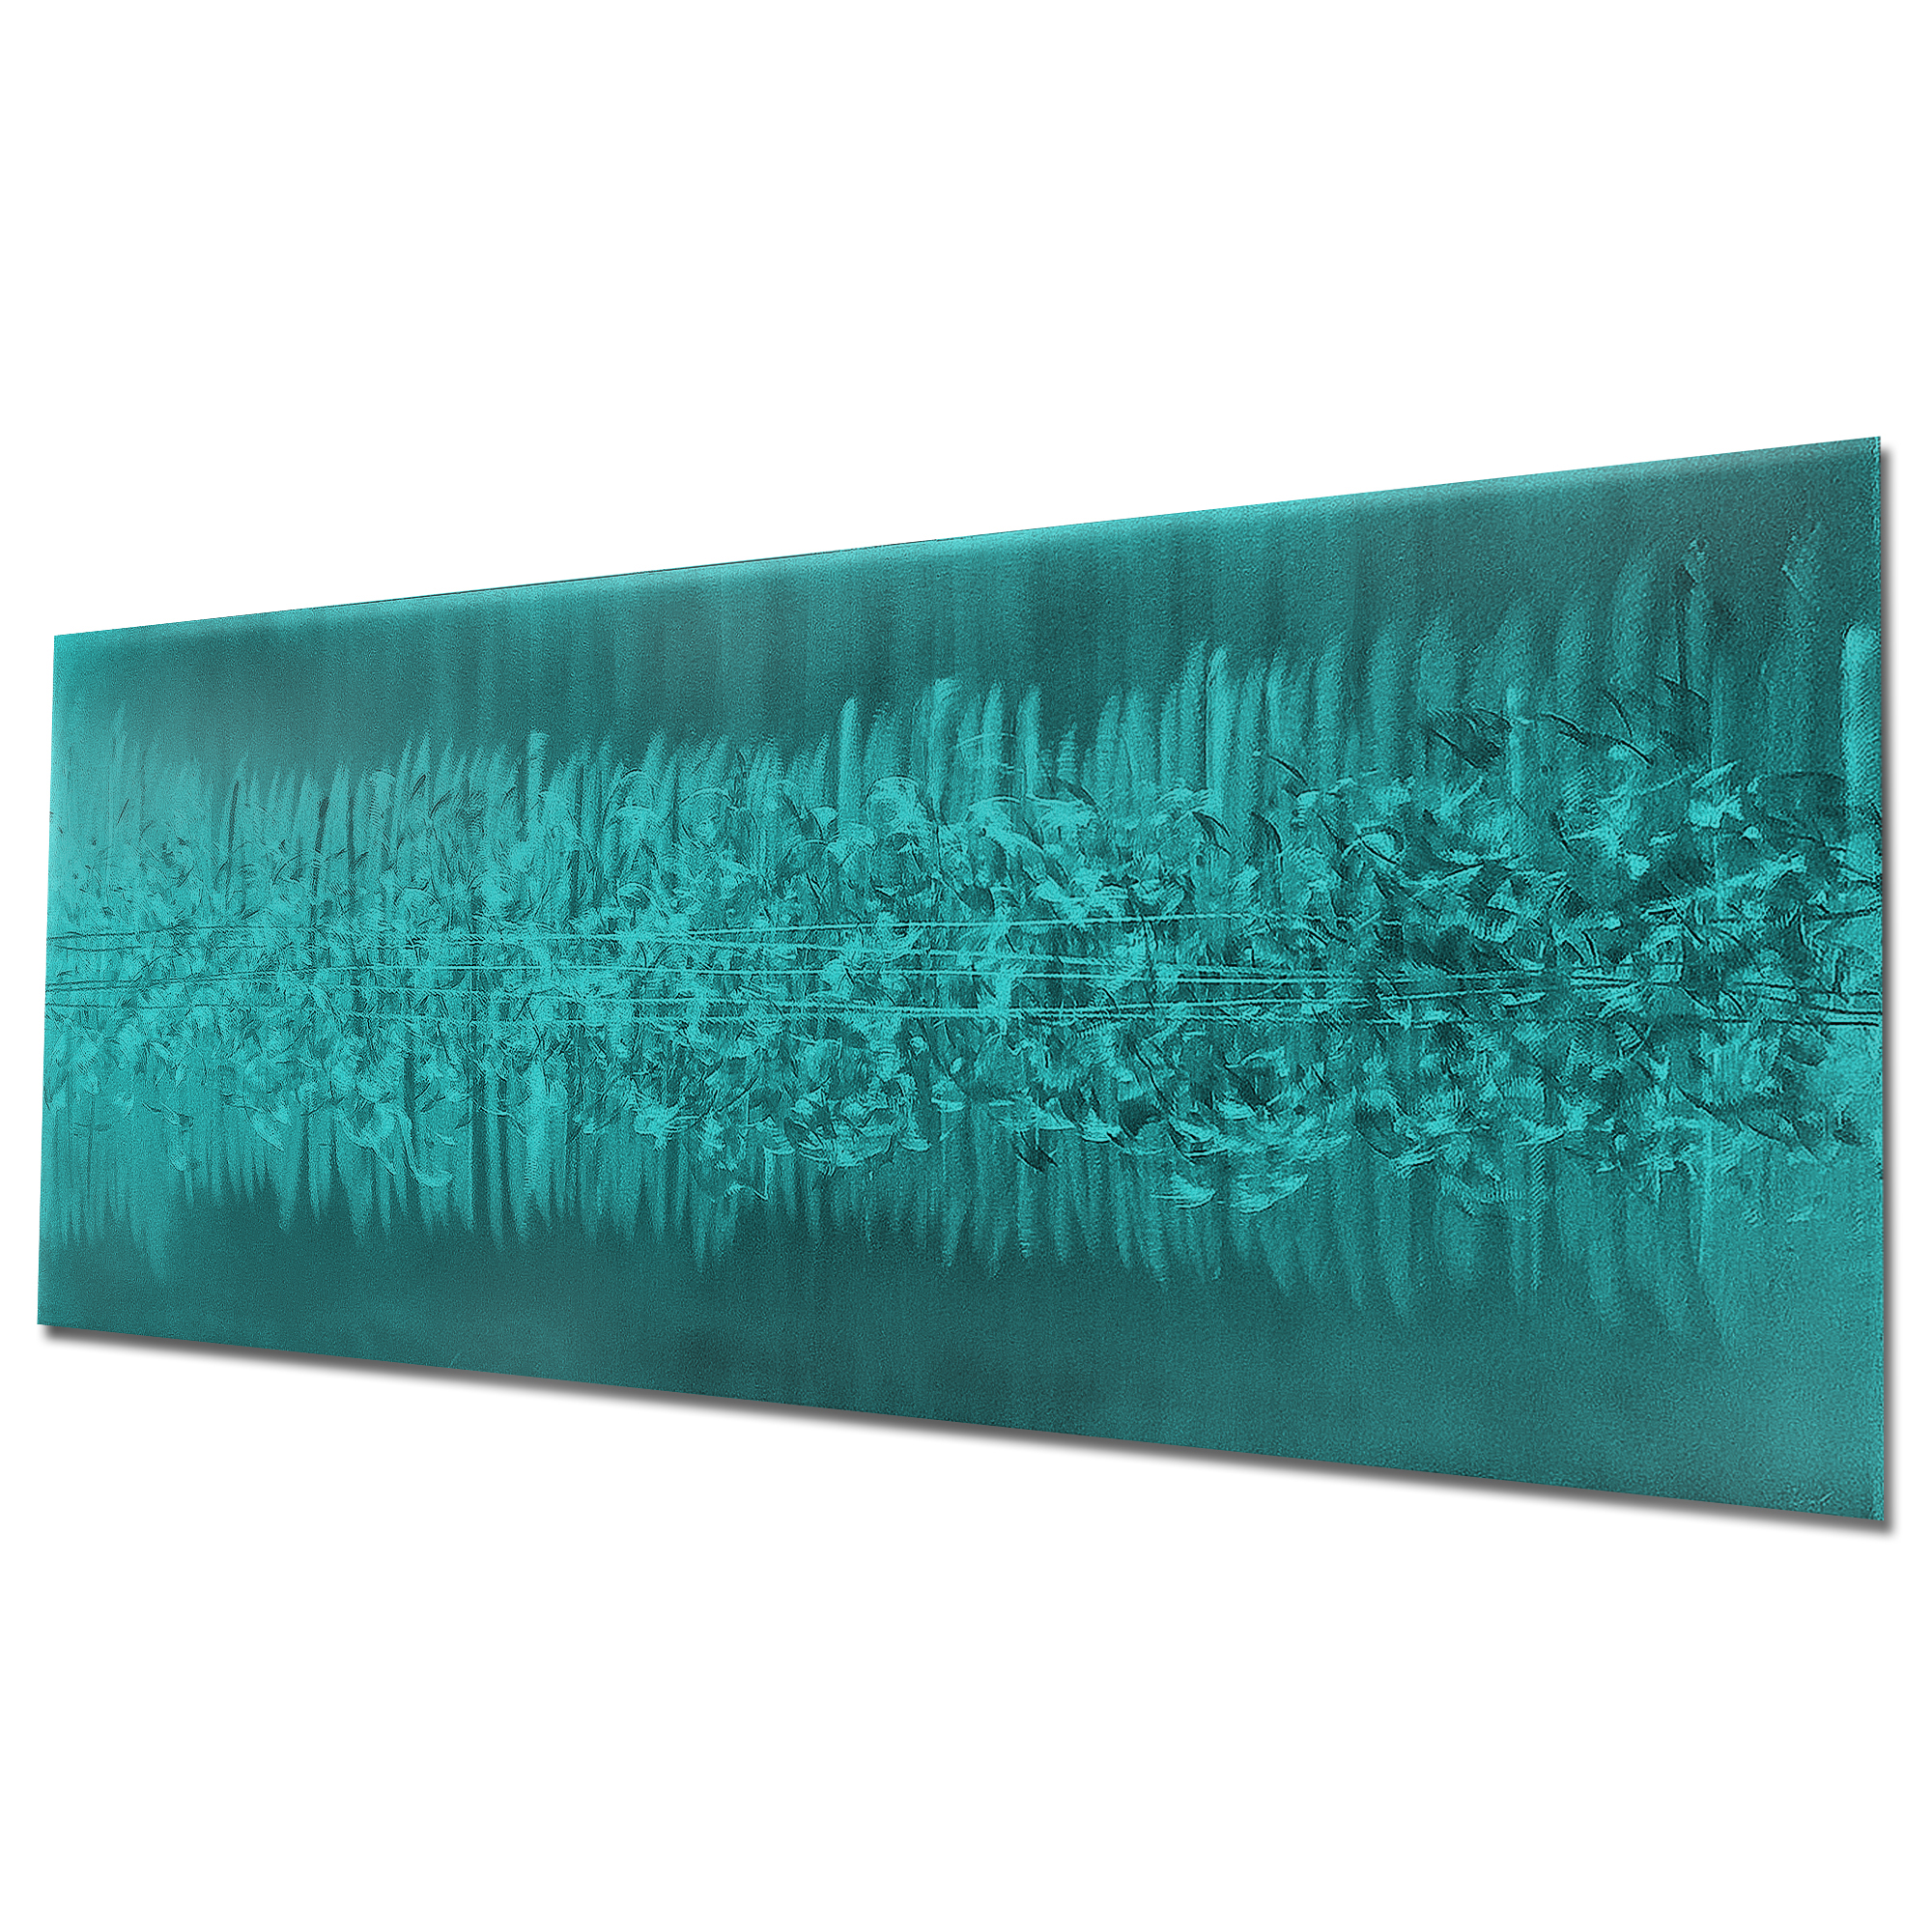 Static Teal by Helena Martin - Original Abstract Art on Ground and Painted Metal - Image 3